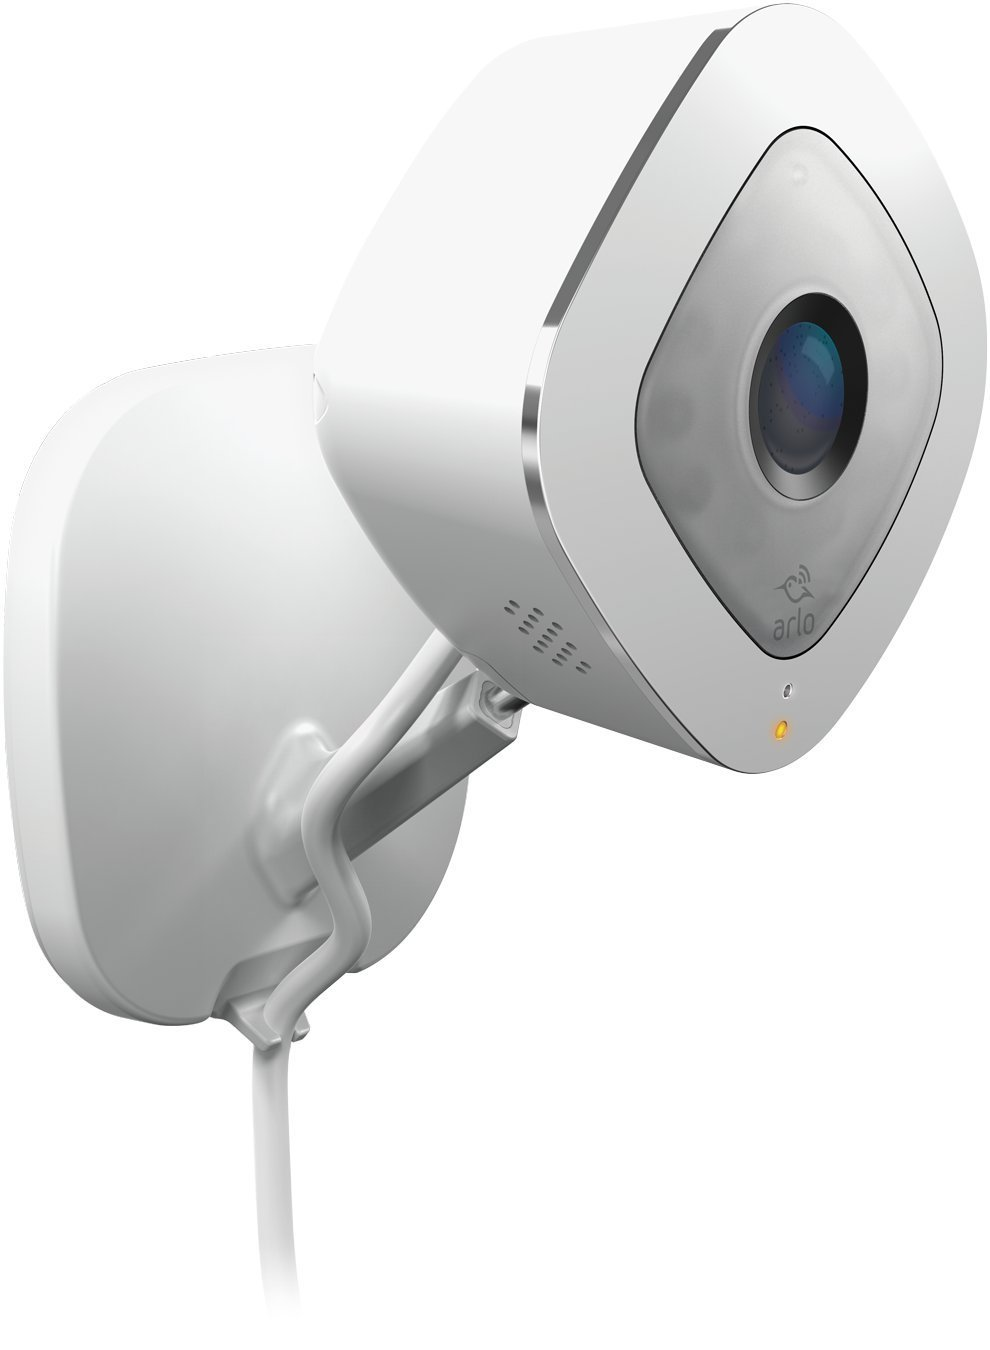 Netgear Arlo 1080P HD Wired Security Camera with Audio and Cloud Storage